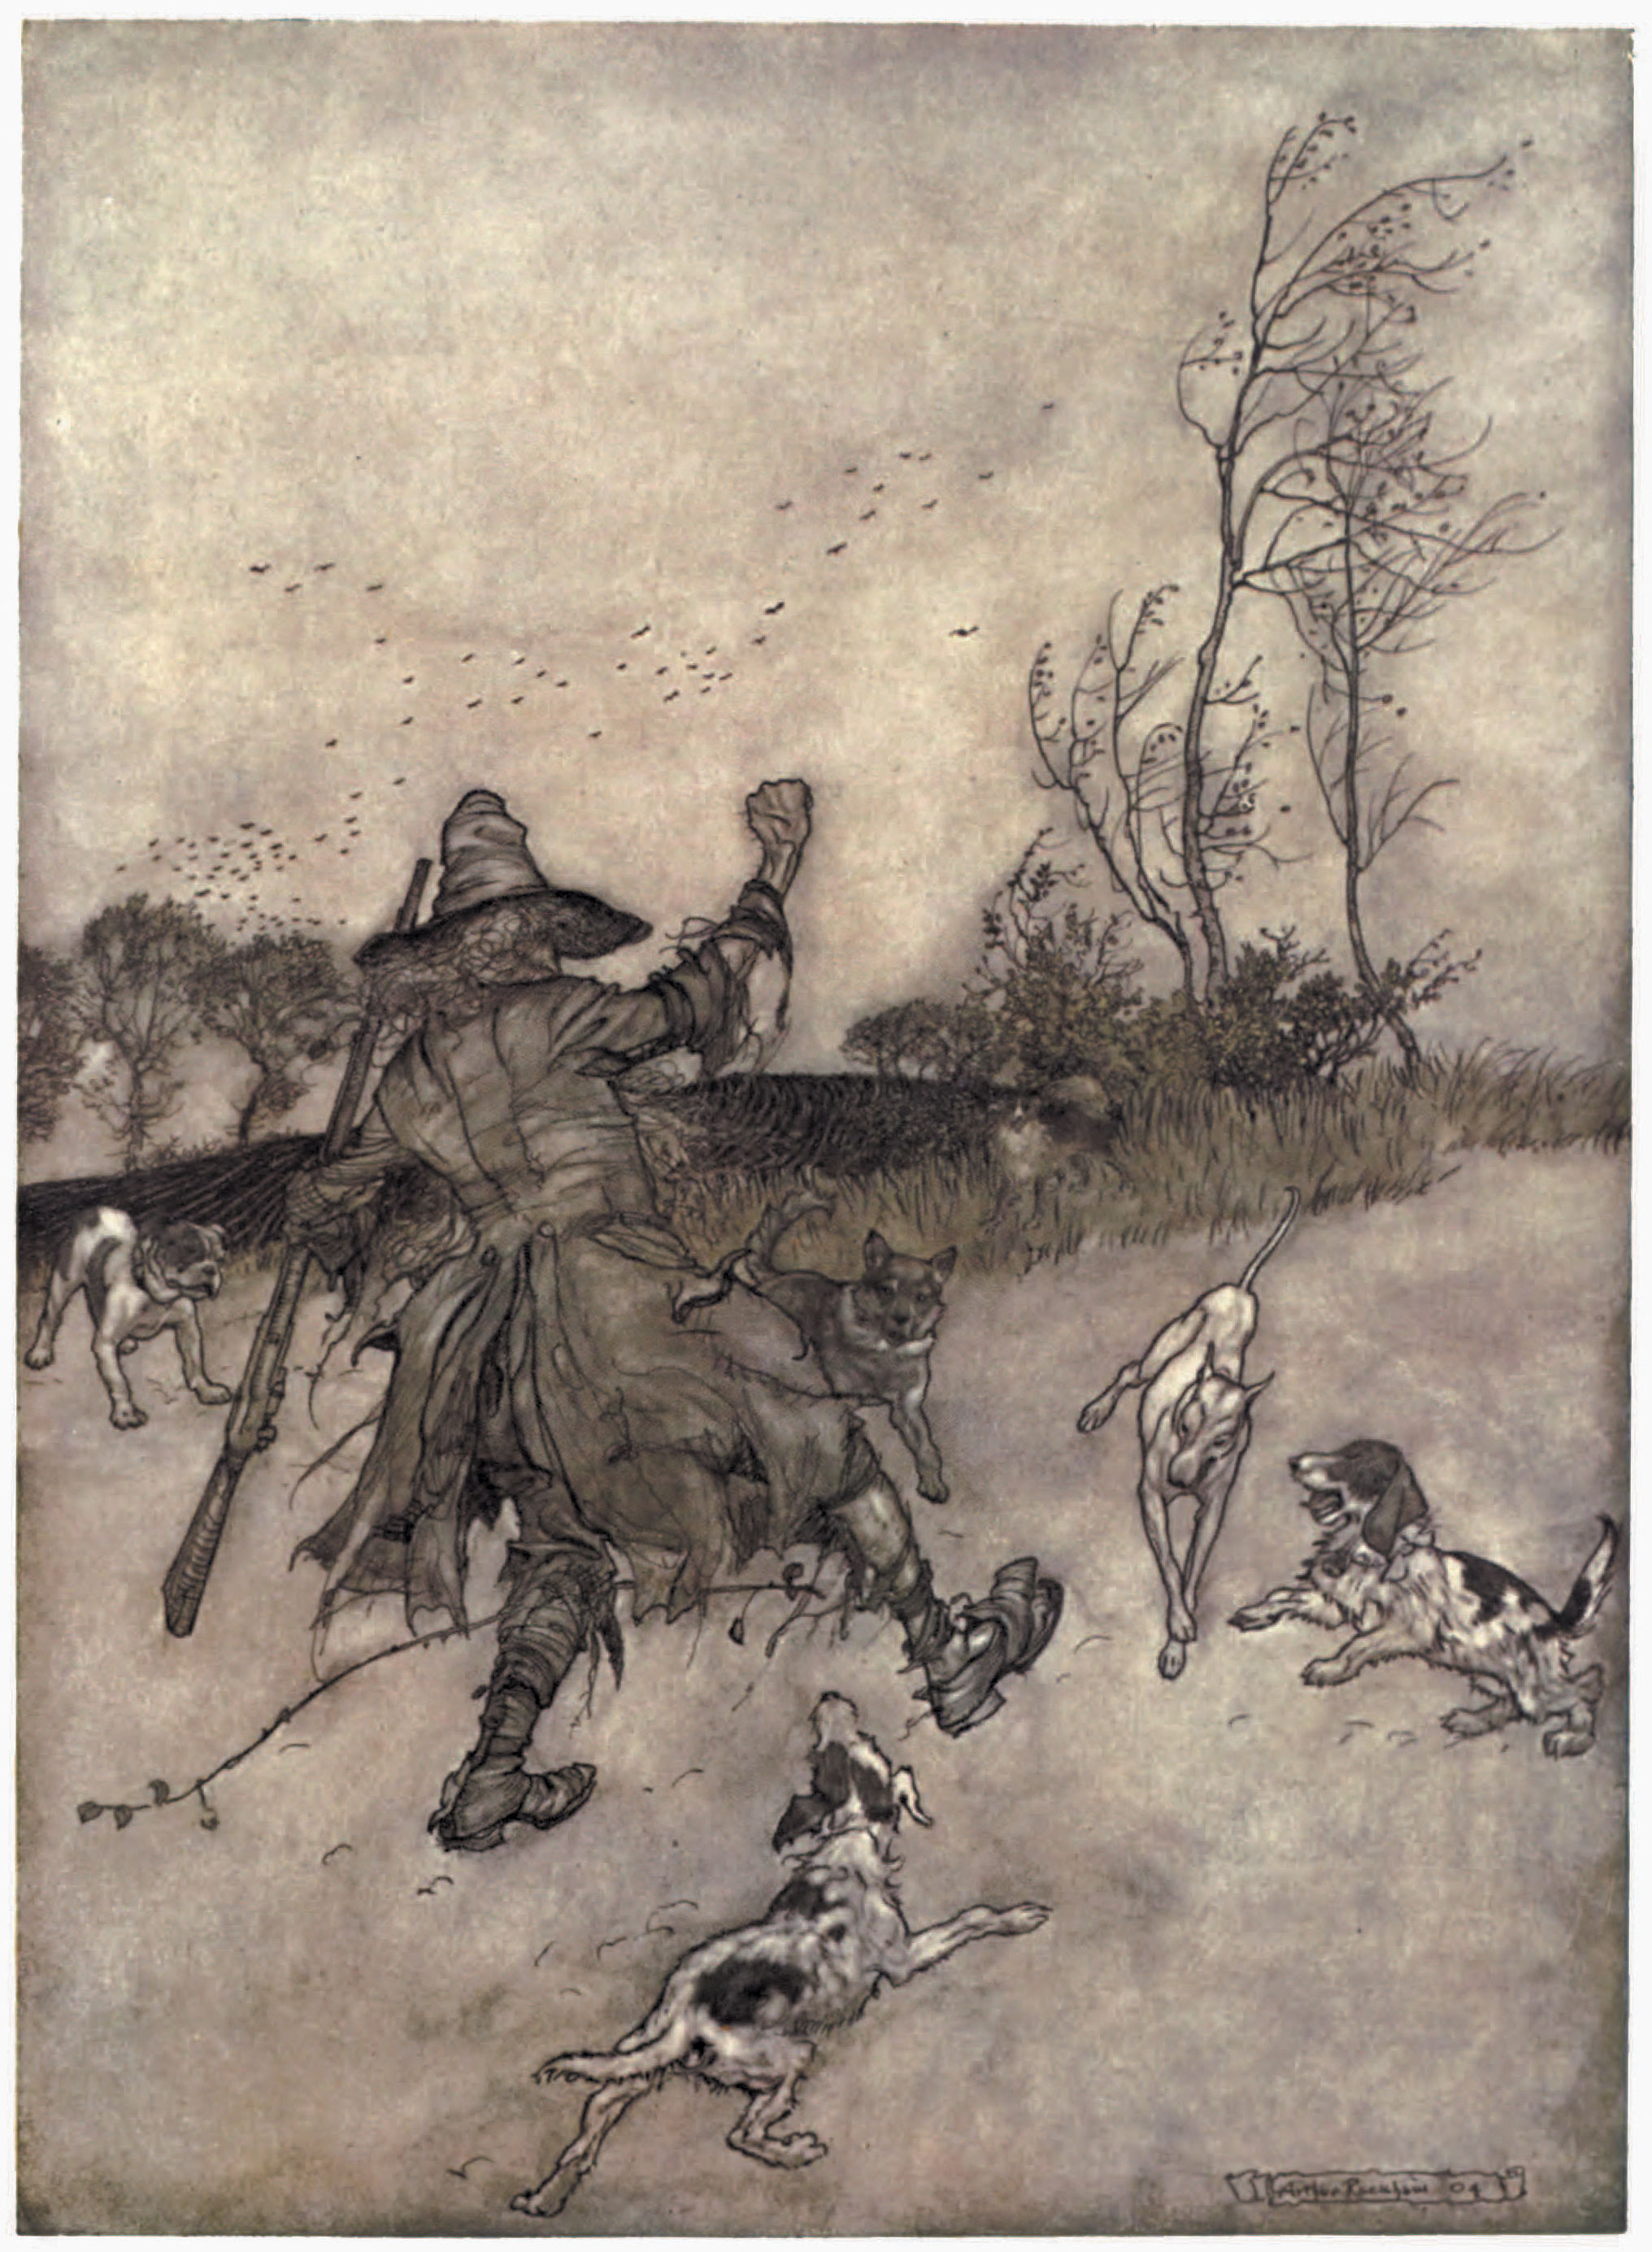 From Rip Van Winkle by Arthur Rackham